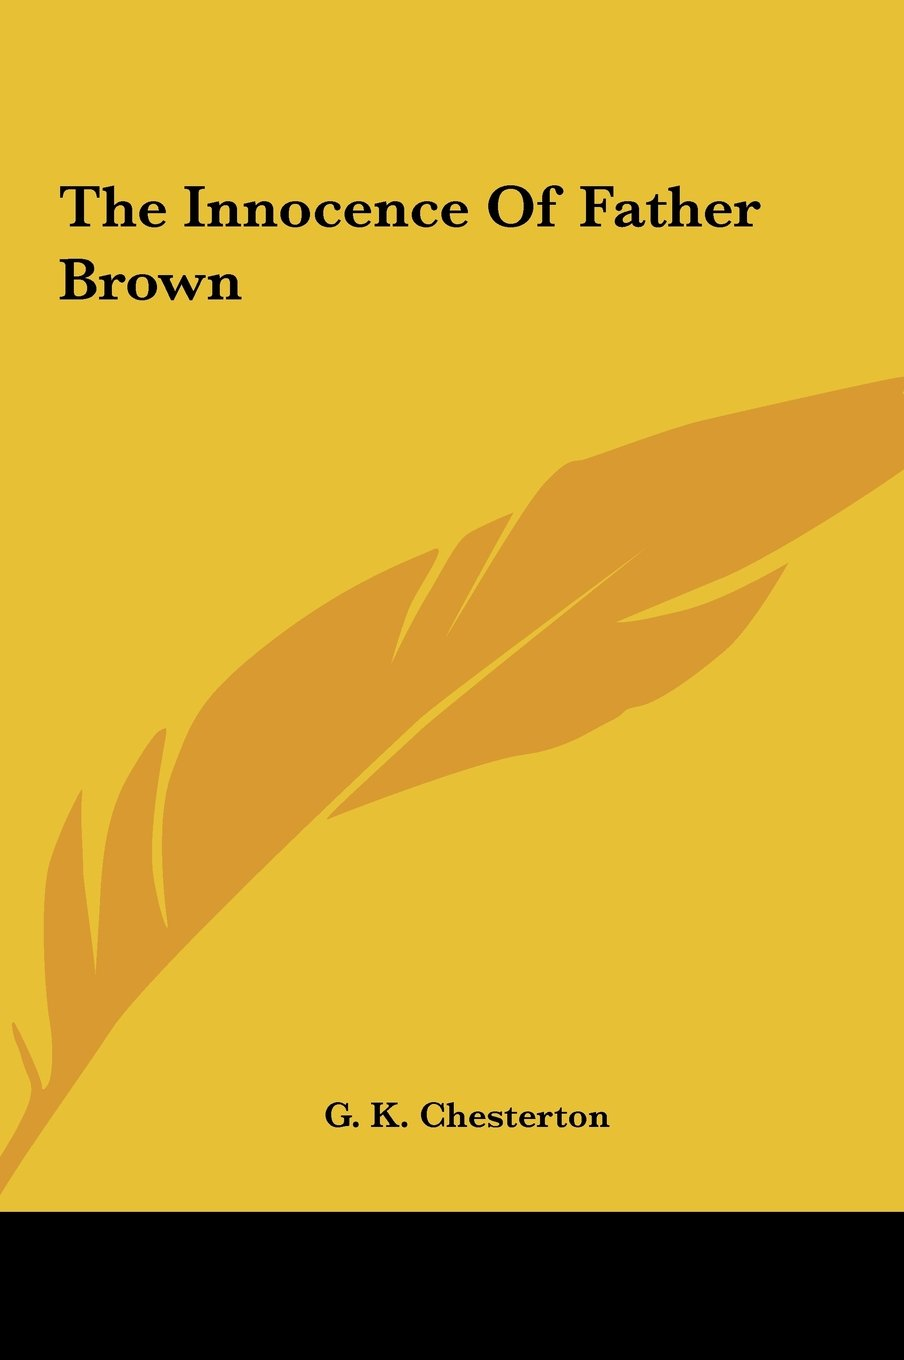 The Innocence of Father Brown the Innocence of Father Brown ebook